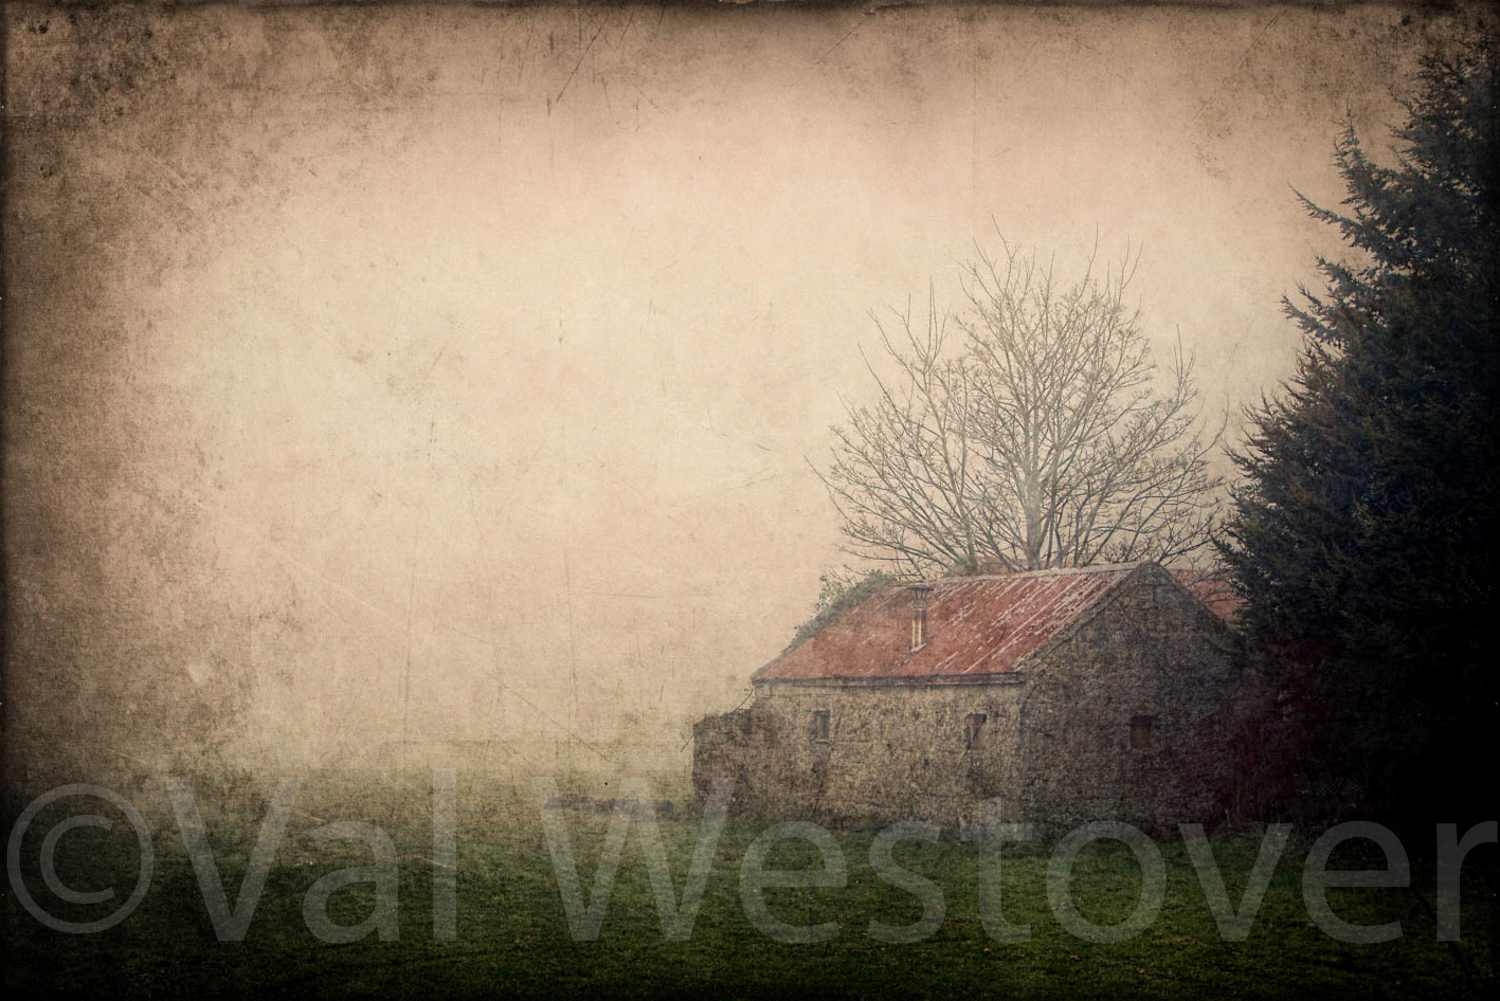 val-westover-photography--26.jpg